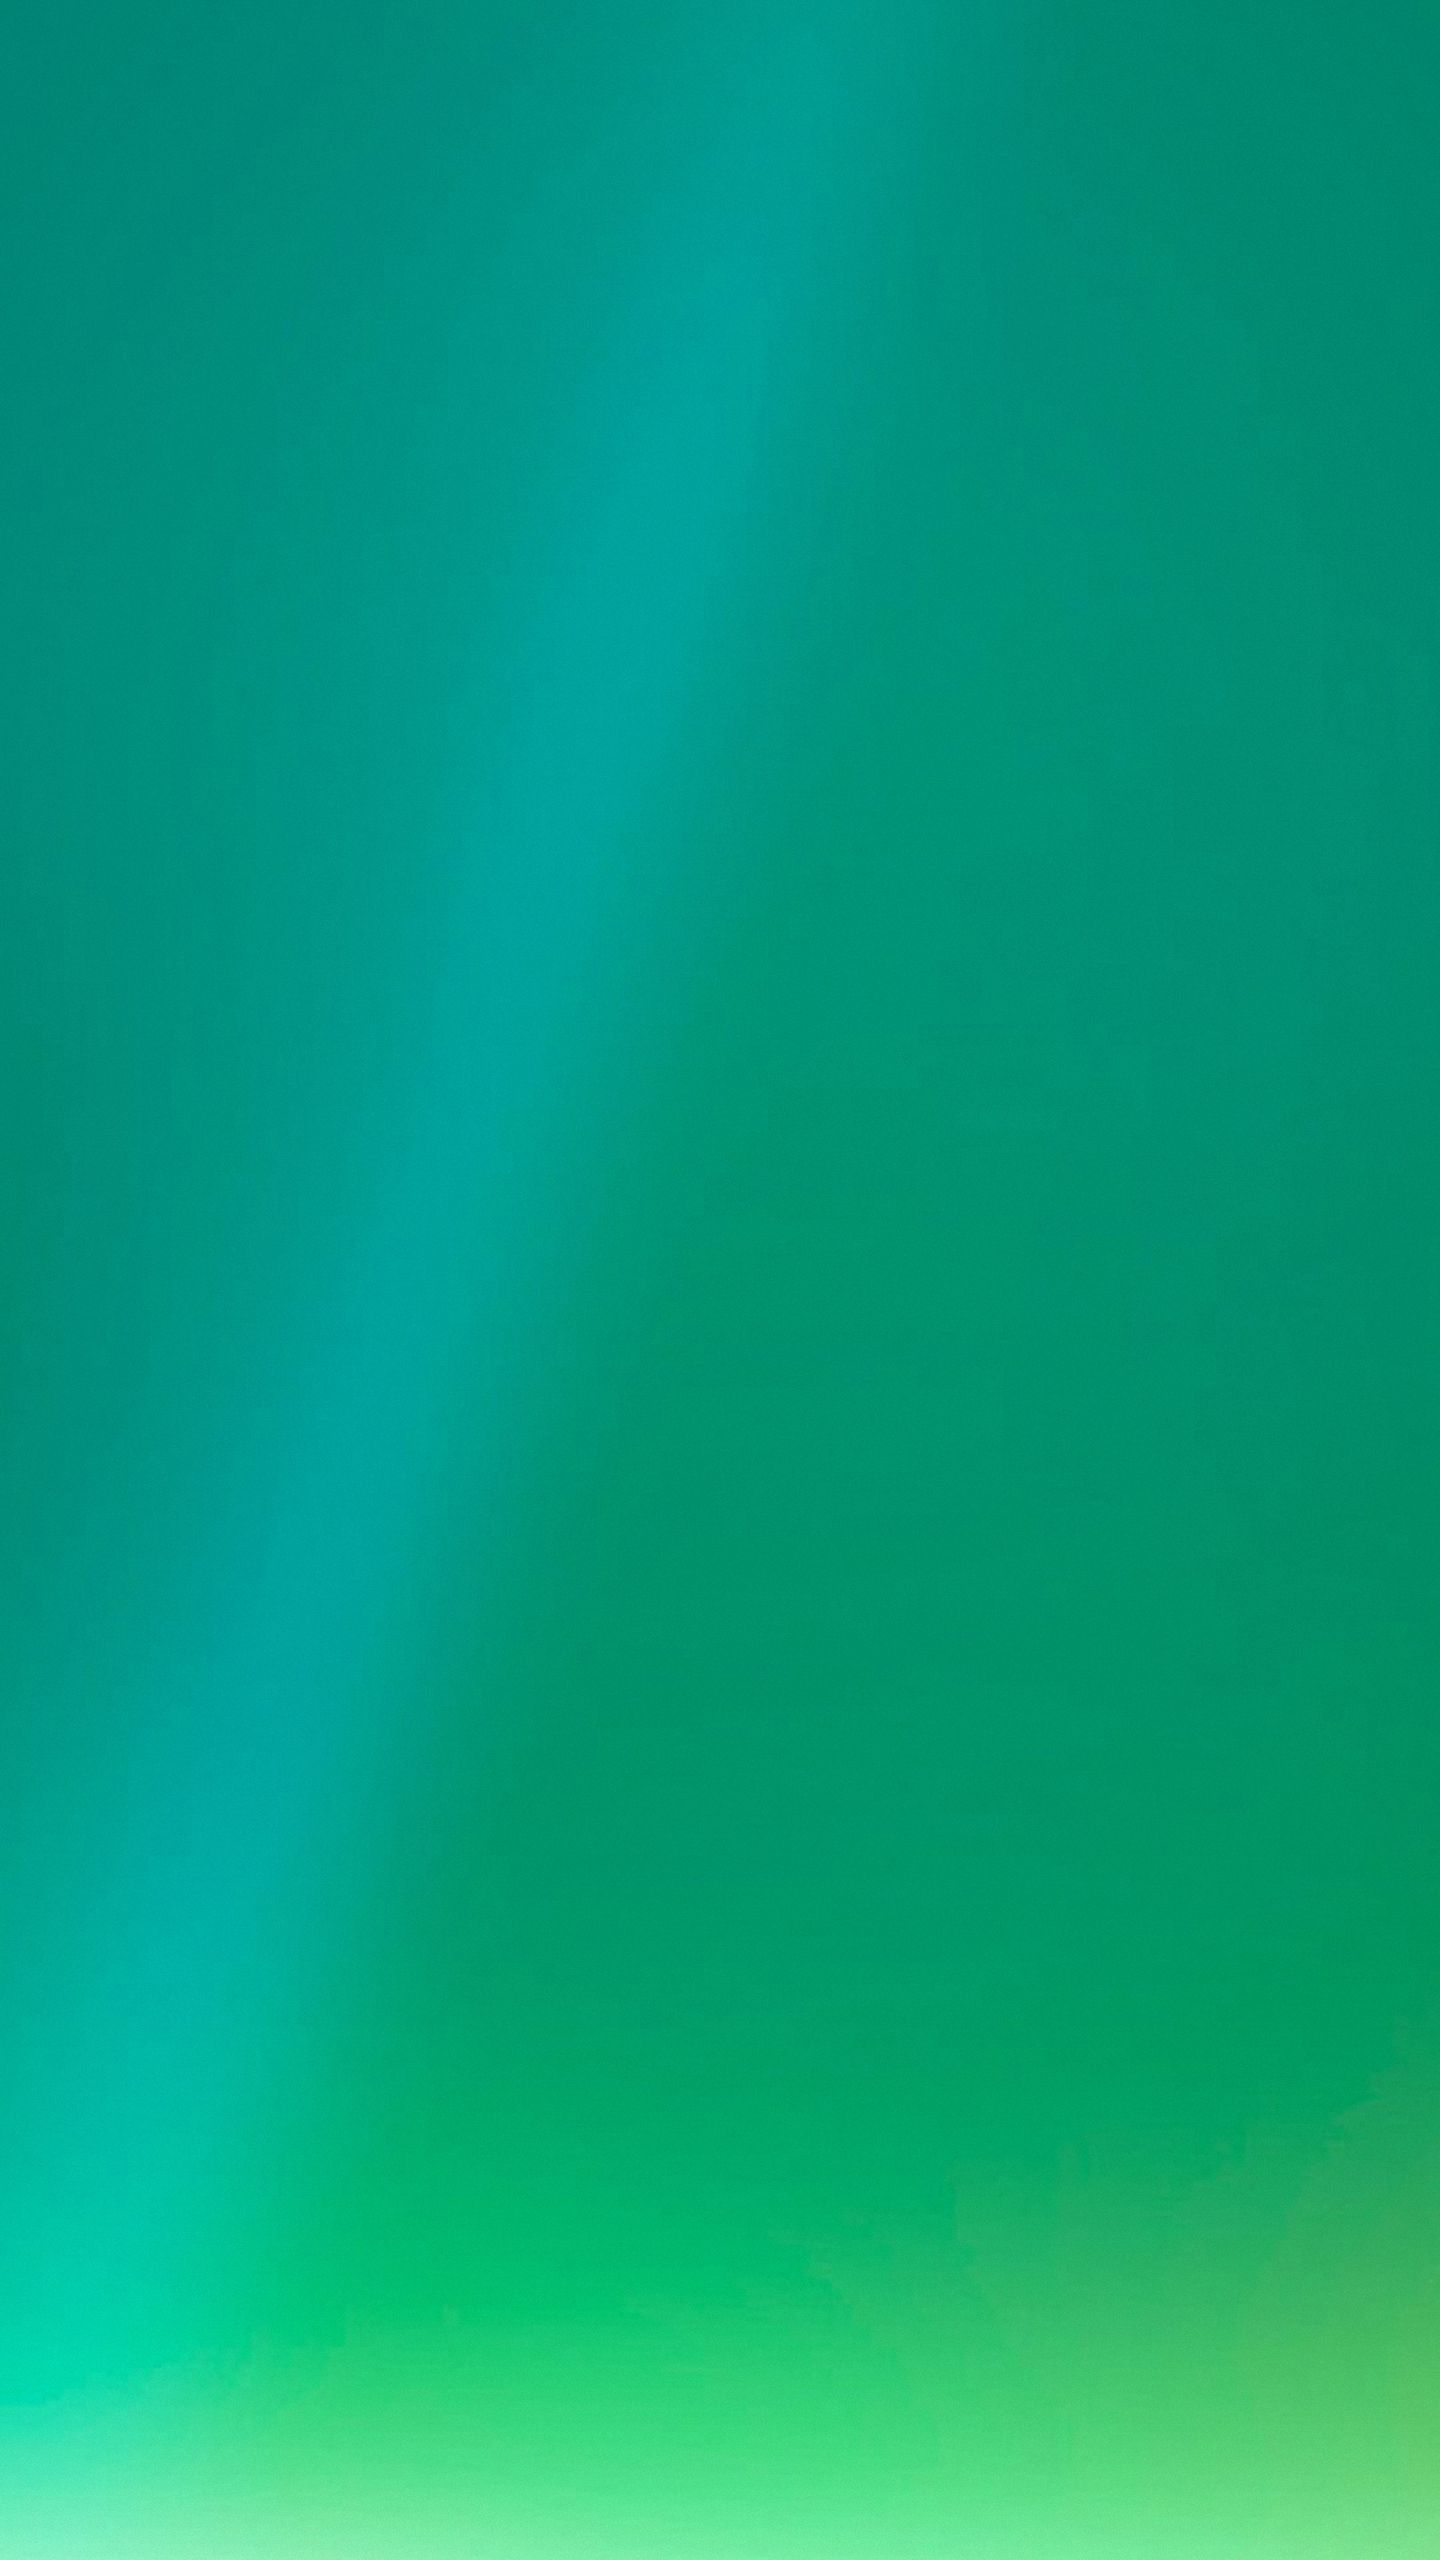 For Your Lg G4 Hd 1440x2560 Greenish Lg G4 Wallpapers